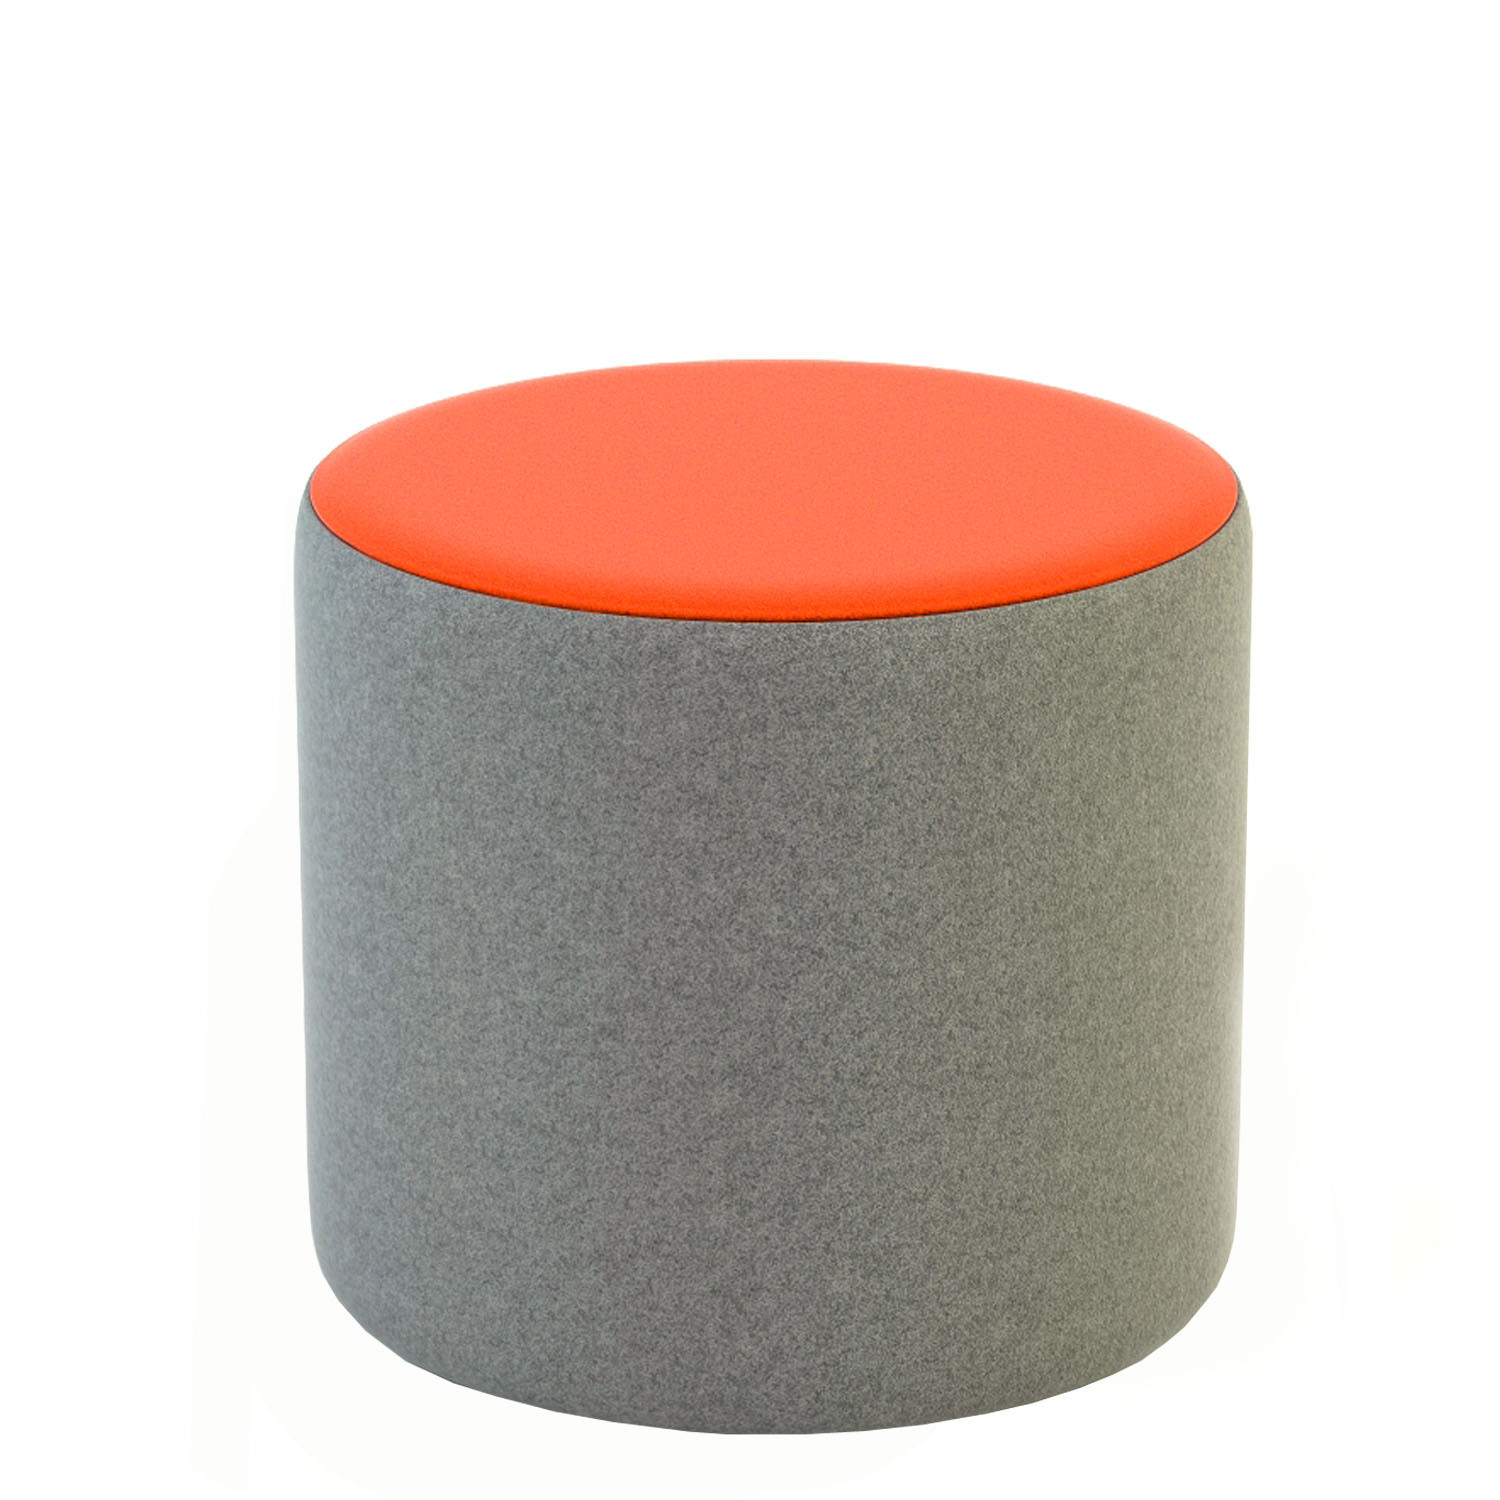 Cubix Low Stool